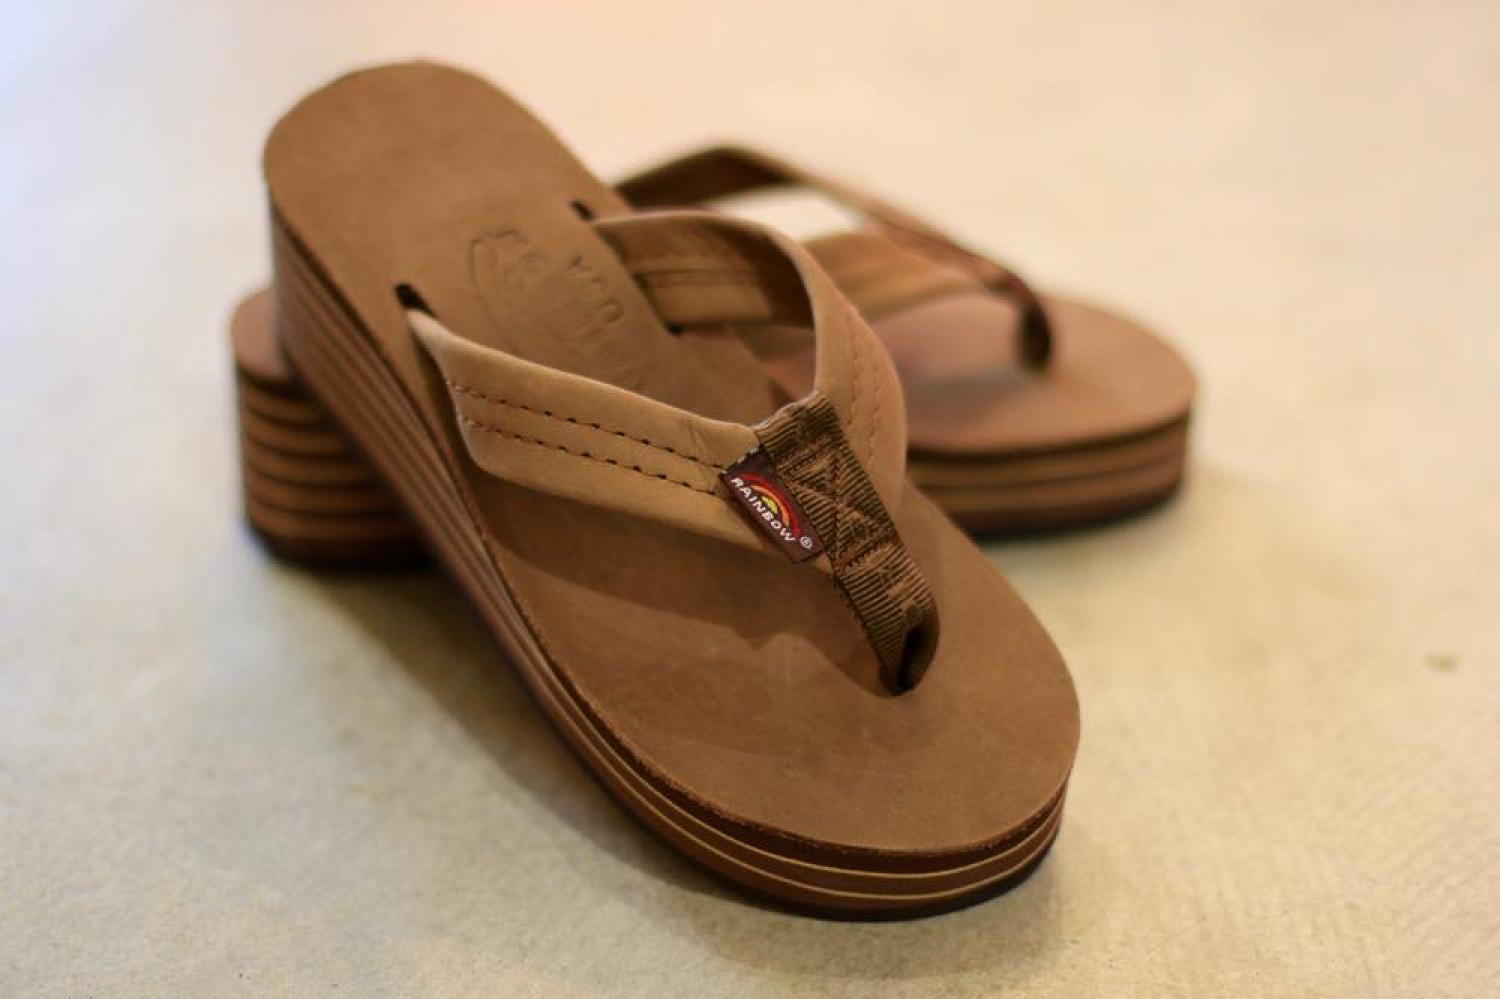 RAINBOW SANDALS WOMEN'S DARK BROWN